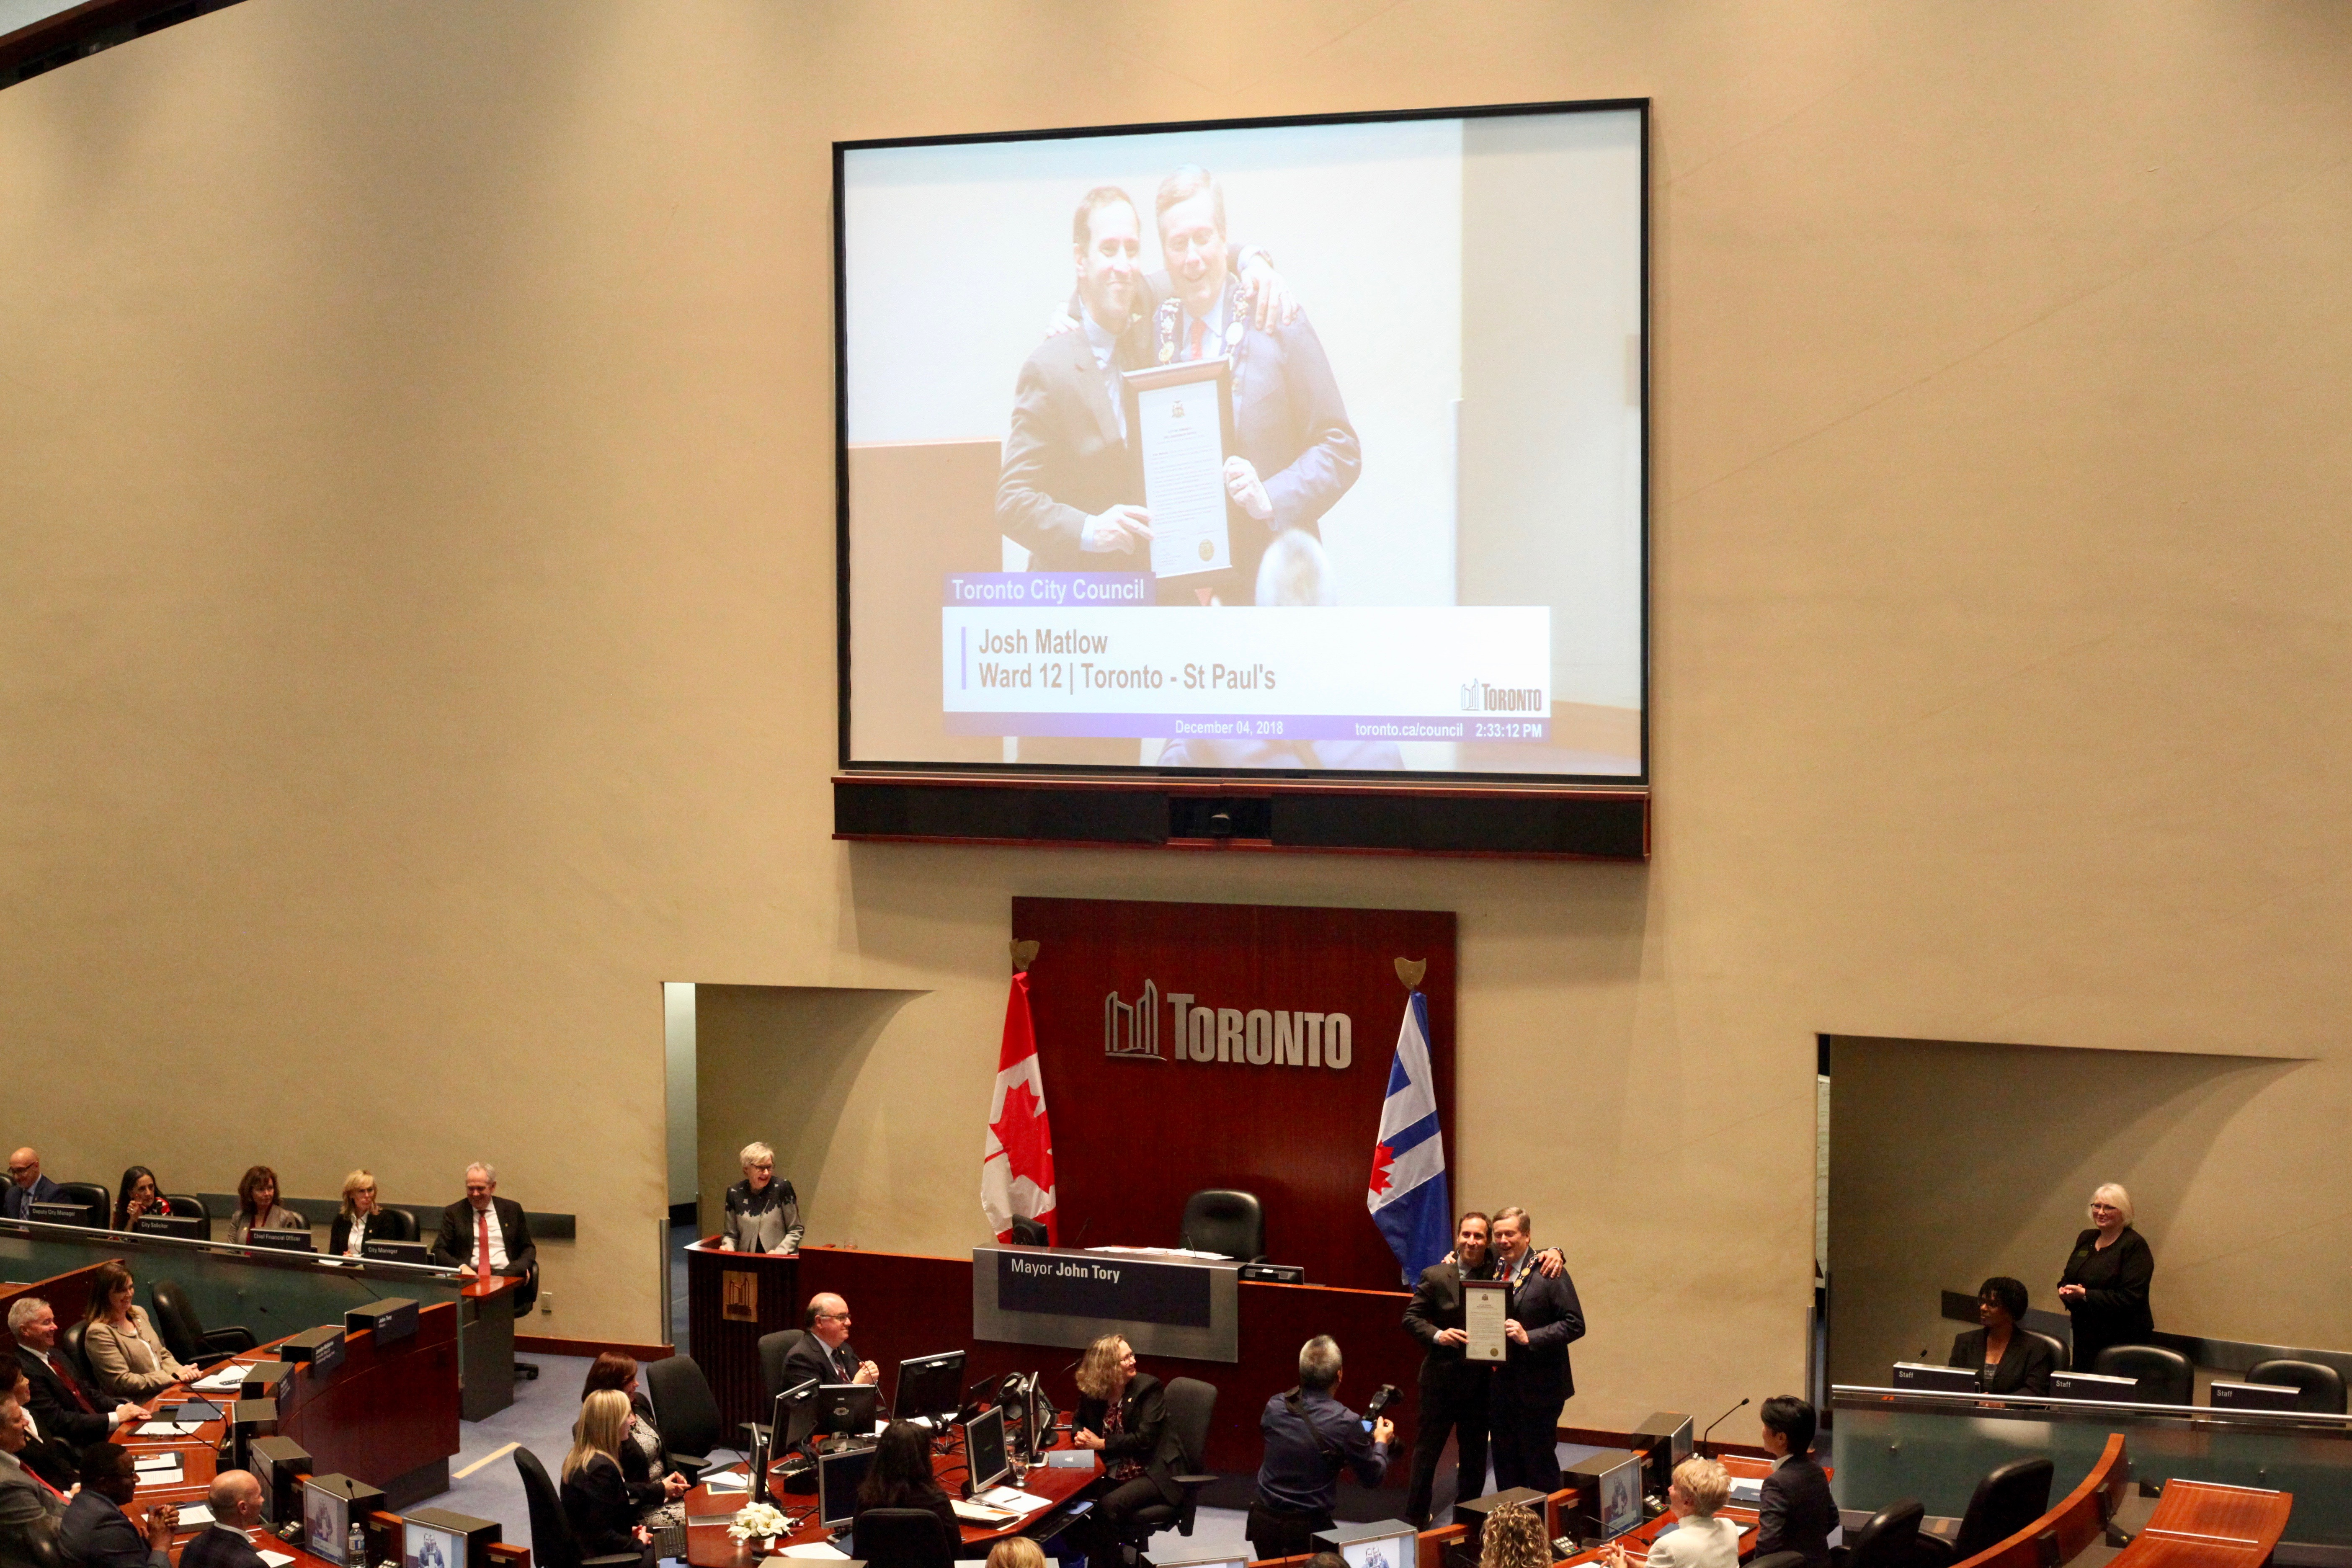 2:45 p.m. Dec. 4, 2018. Councillor Josh Matlow and Mayor John Tory enjoy a close moment as they pose for a photo at council's first meeting of the term.